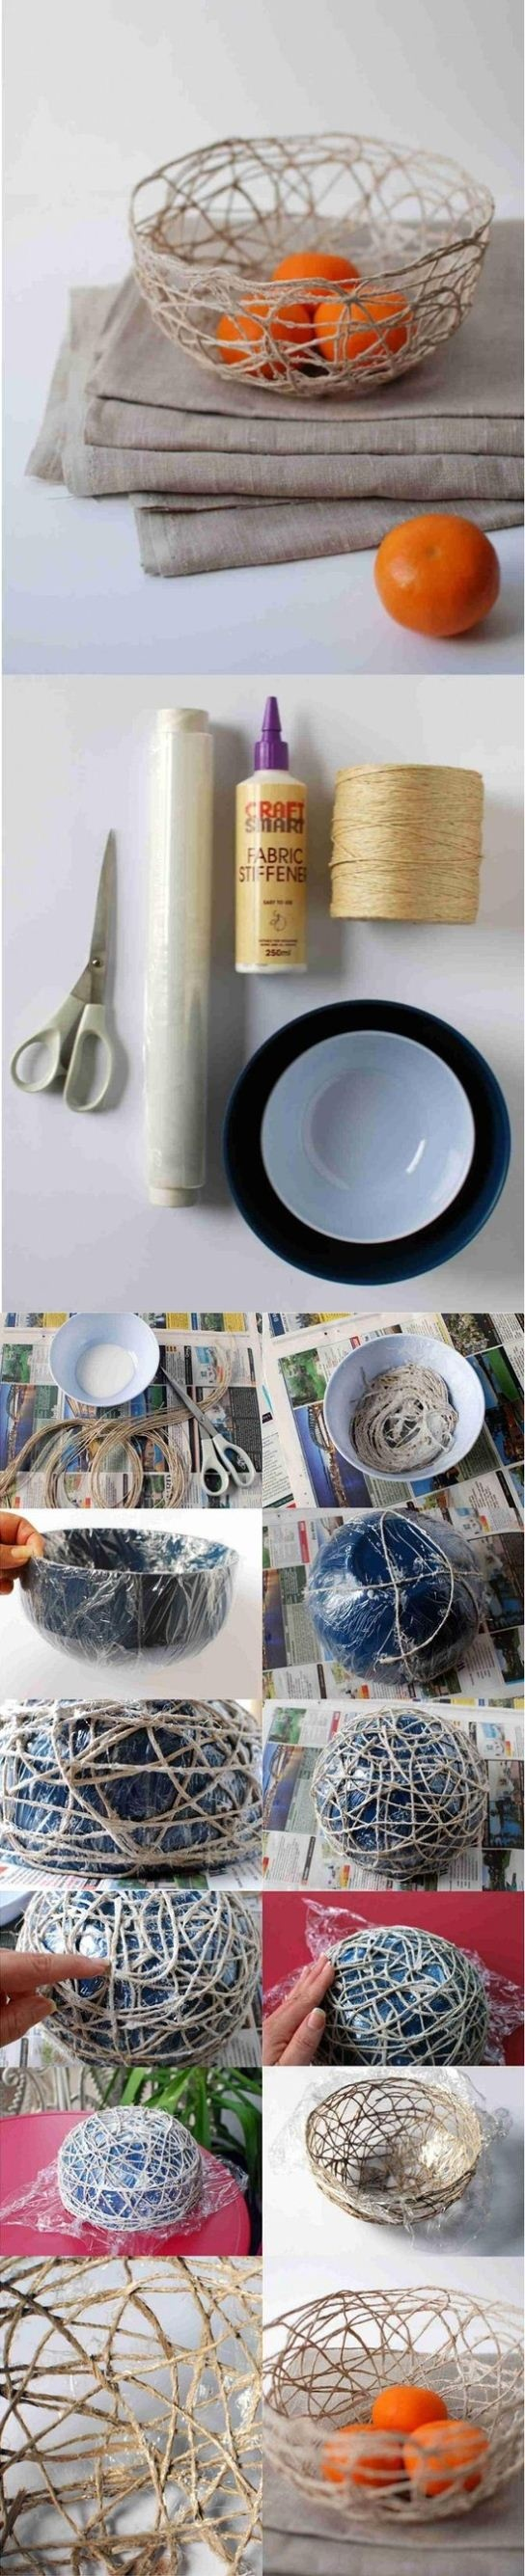 9 unique and useful do it yourself projects for home decor diy ideas for the home decor popular diy upcycle craft projects solutioingenieria